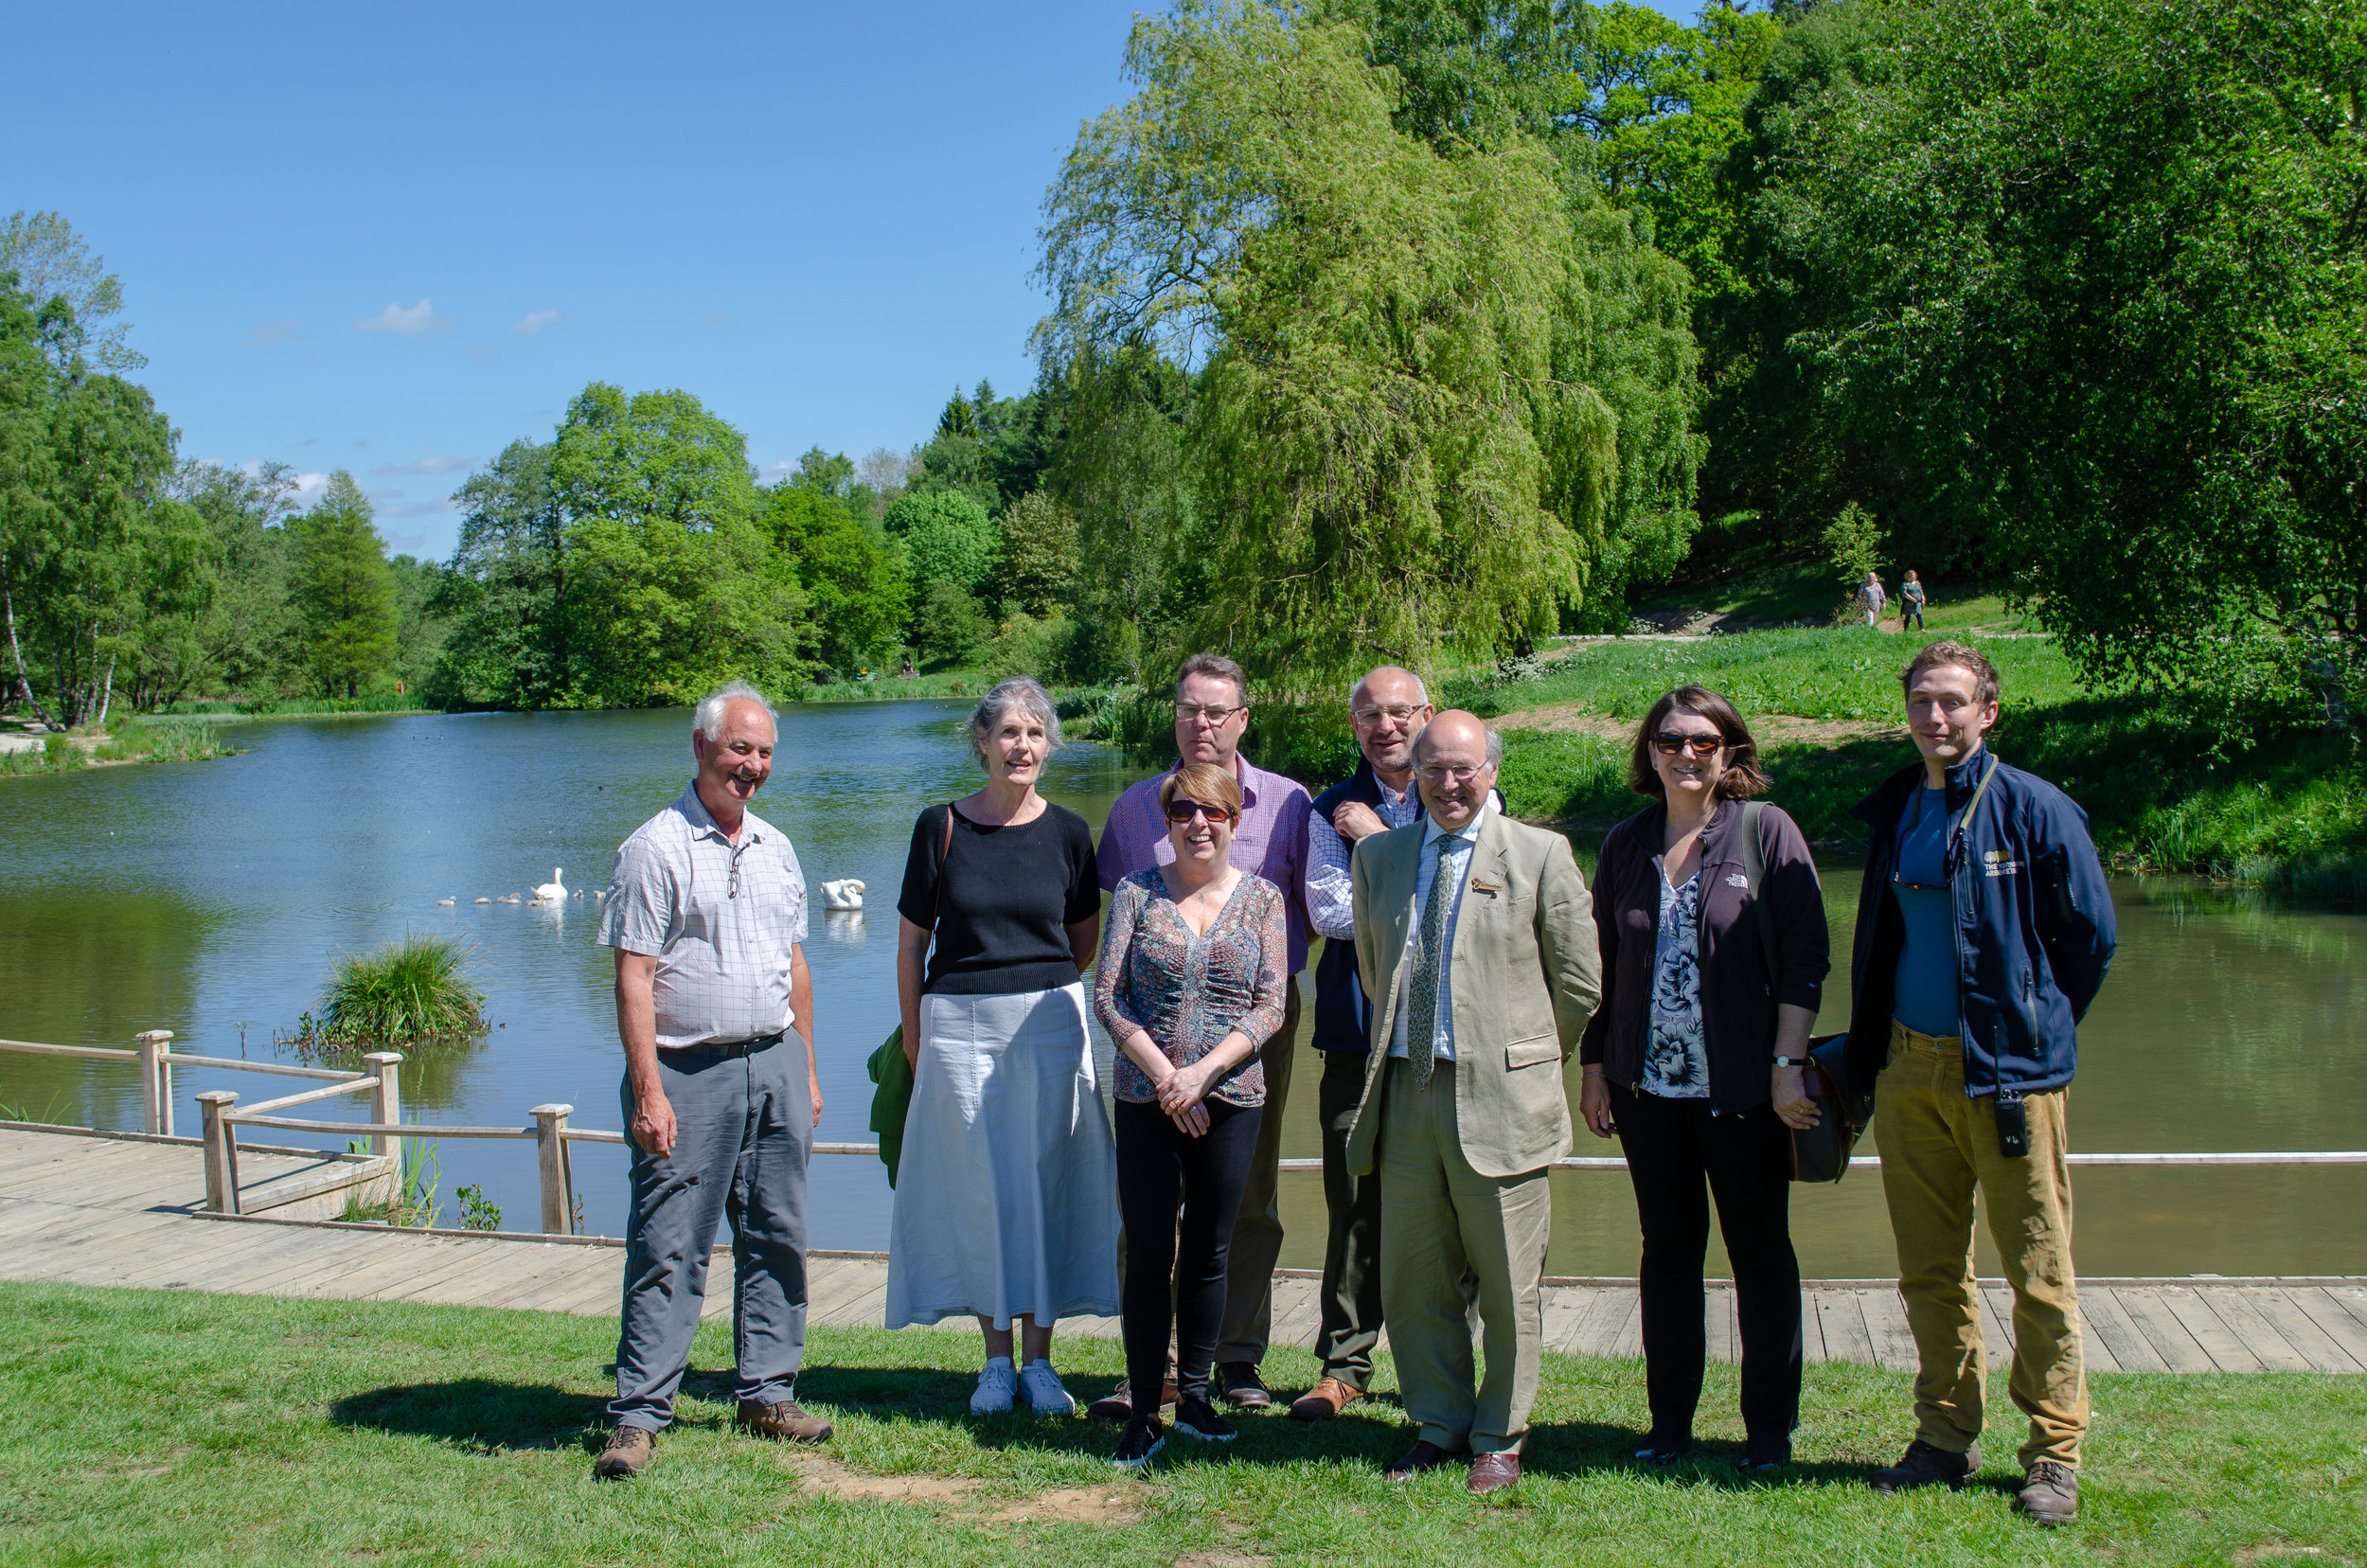 Lord Gardiner of Kimble, Parliamentary Under Secretary of State for Rural Affairs and Biosecurity Visits Yorkshire Arboretum